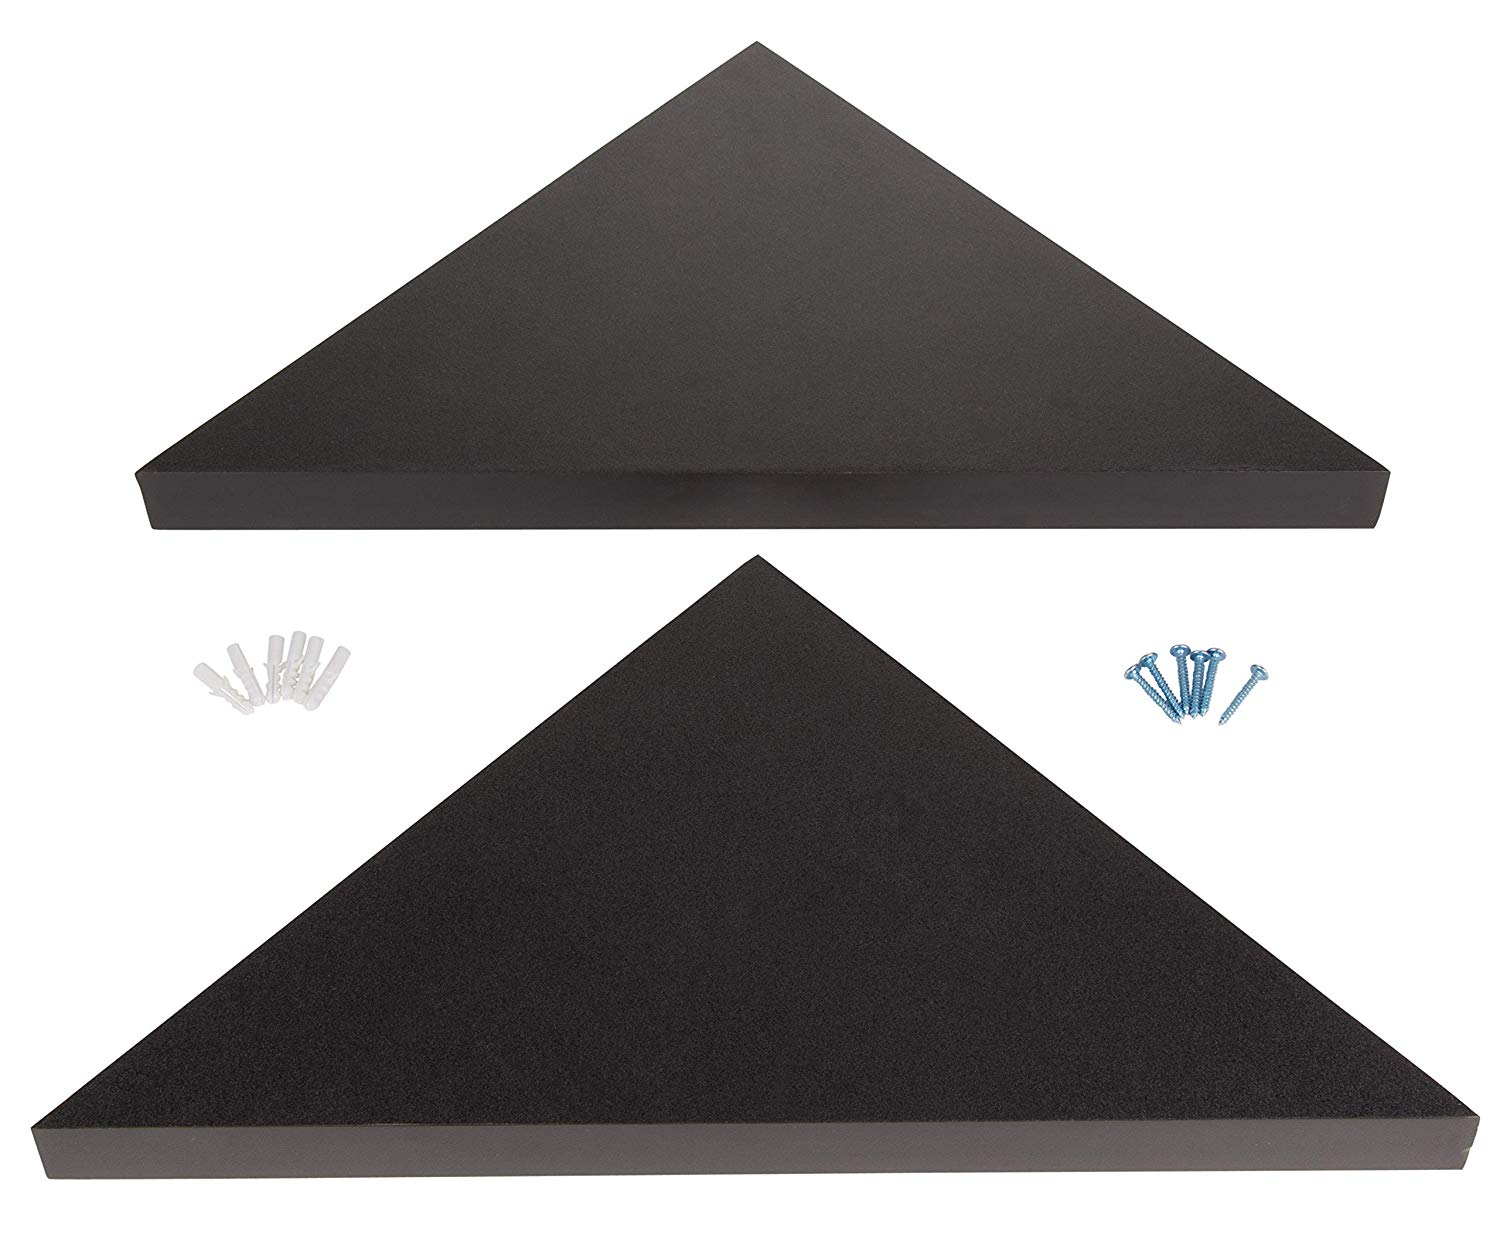 juvale floating corner shelf set triangle wall hanging decorative organizer includes installation hardware black pink shelves lacquer ikea shoe box desk organiser free glass